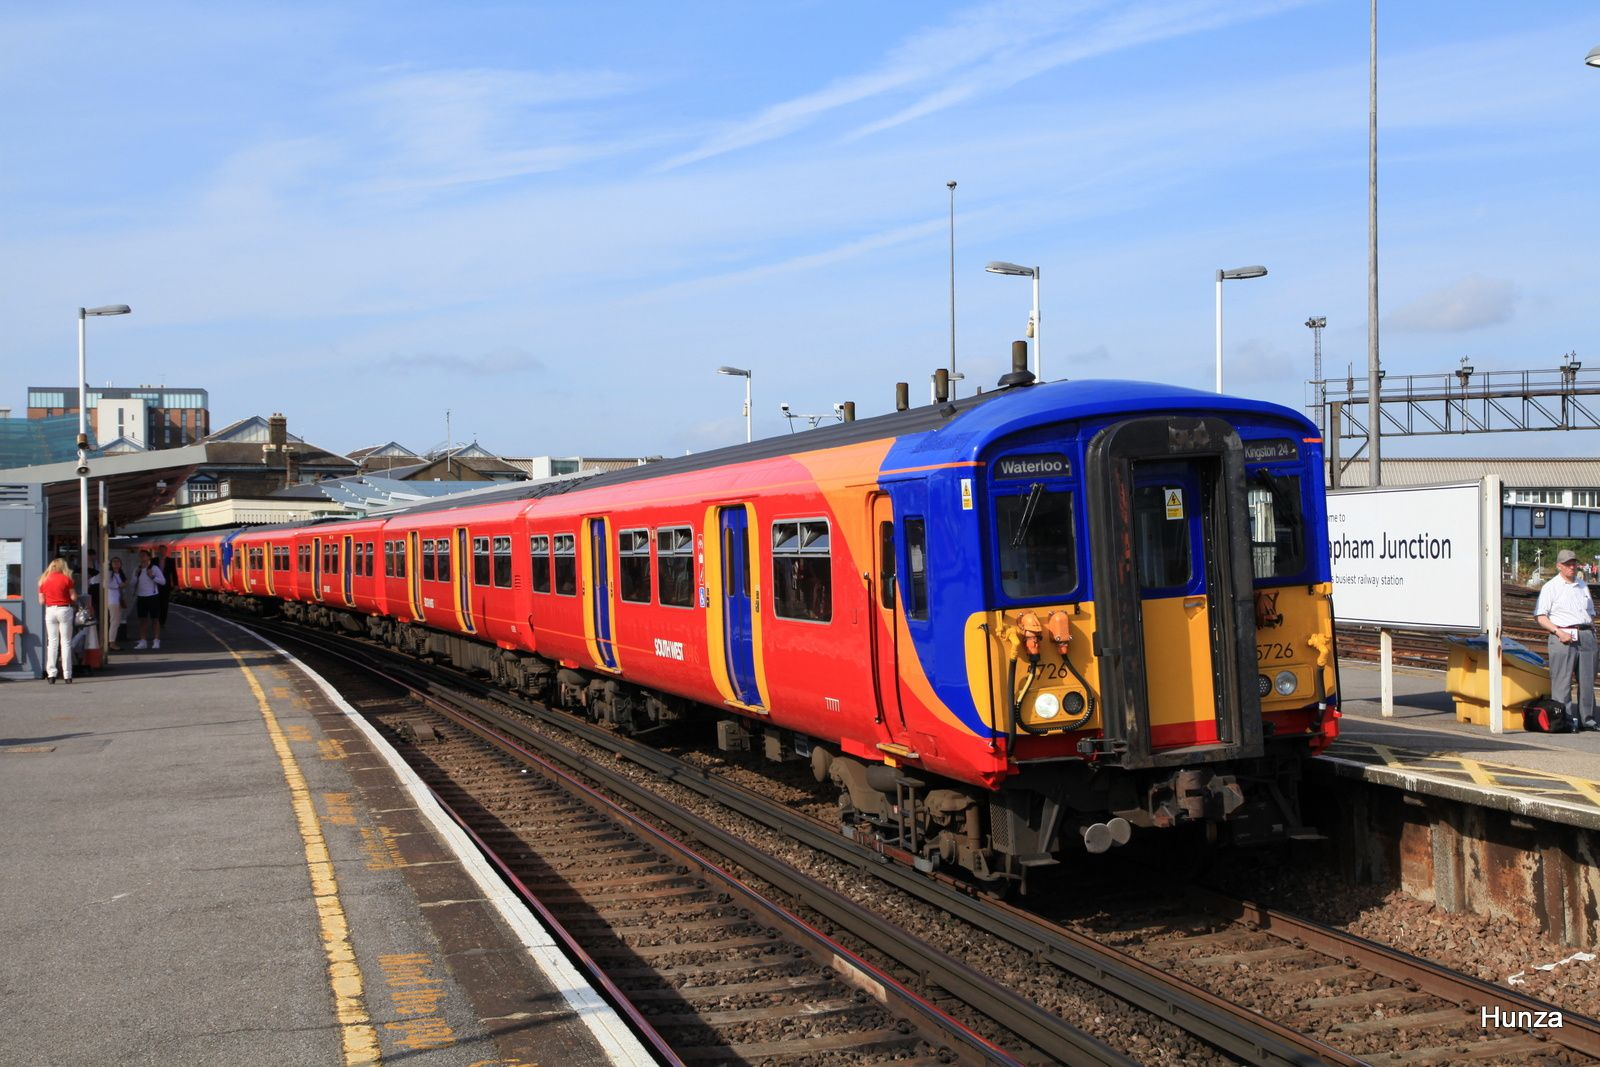 Clapham Junction : class 455/7 n°455 726 de la South West Trains à destination de Waterloo station (31 juillet 2014)